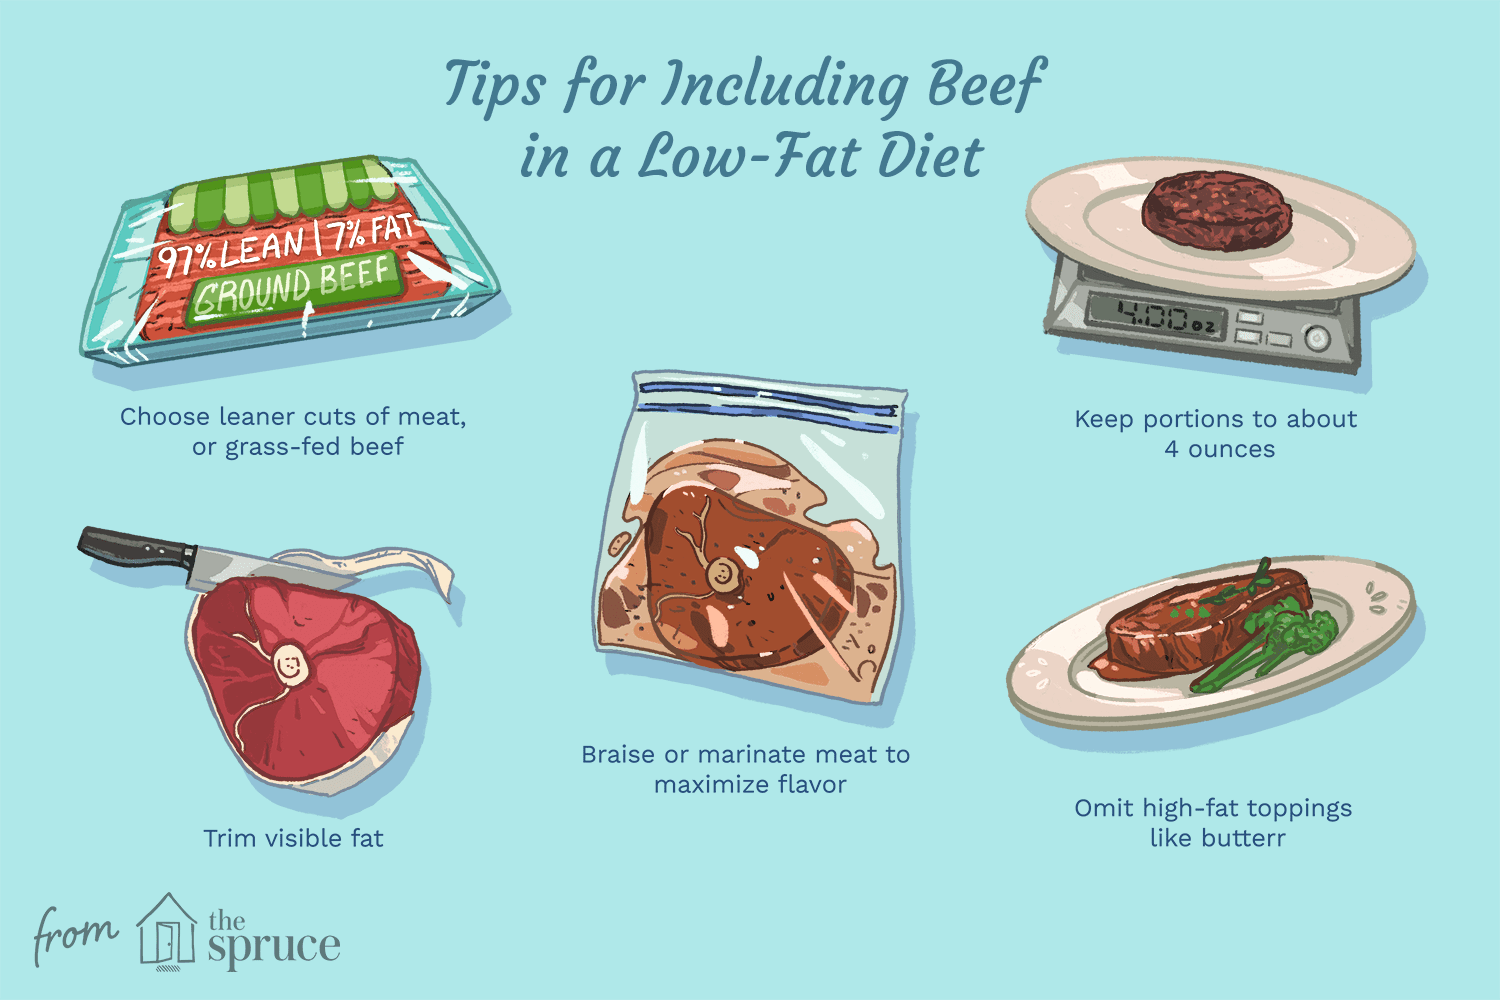 tips for including beef in a low-fat diet